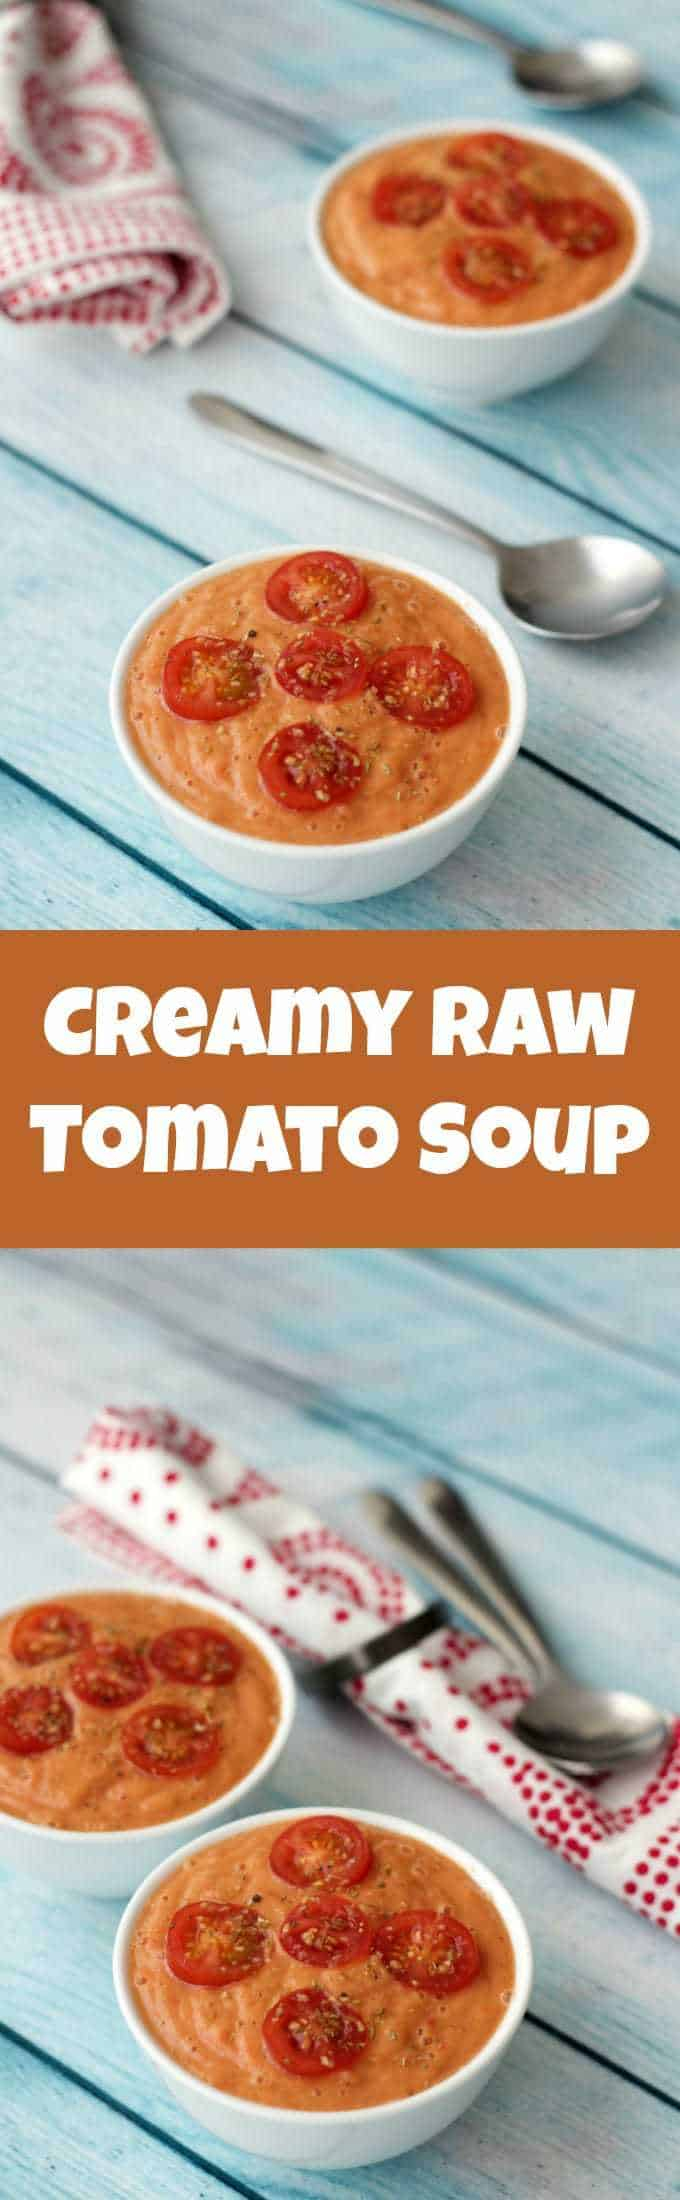 The freshness and flavor of this creamy raw tomato soup simply explodes out of this dish! Raw, vegan and totally delicious, this makes a fabulous appetizer. Vegan | Vegan Soup | Raw Vegan | Vegan Appetizer | Gluten-Free Vegan | lovingitvegan.com